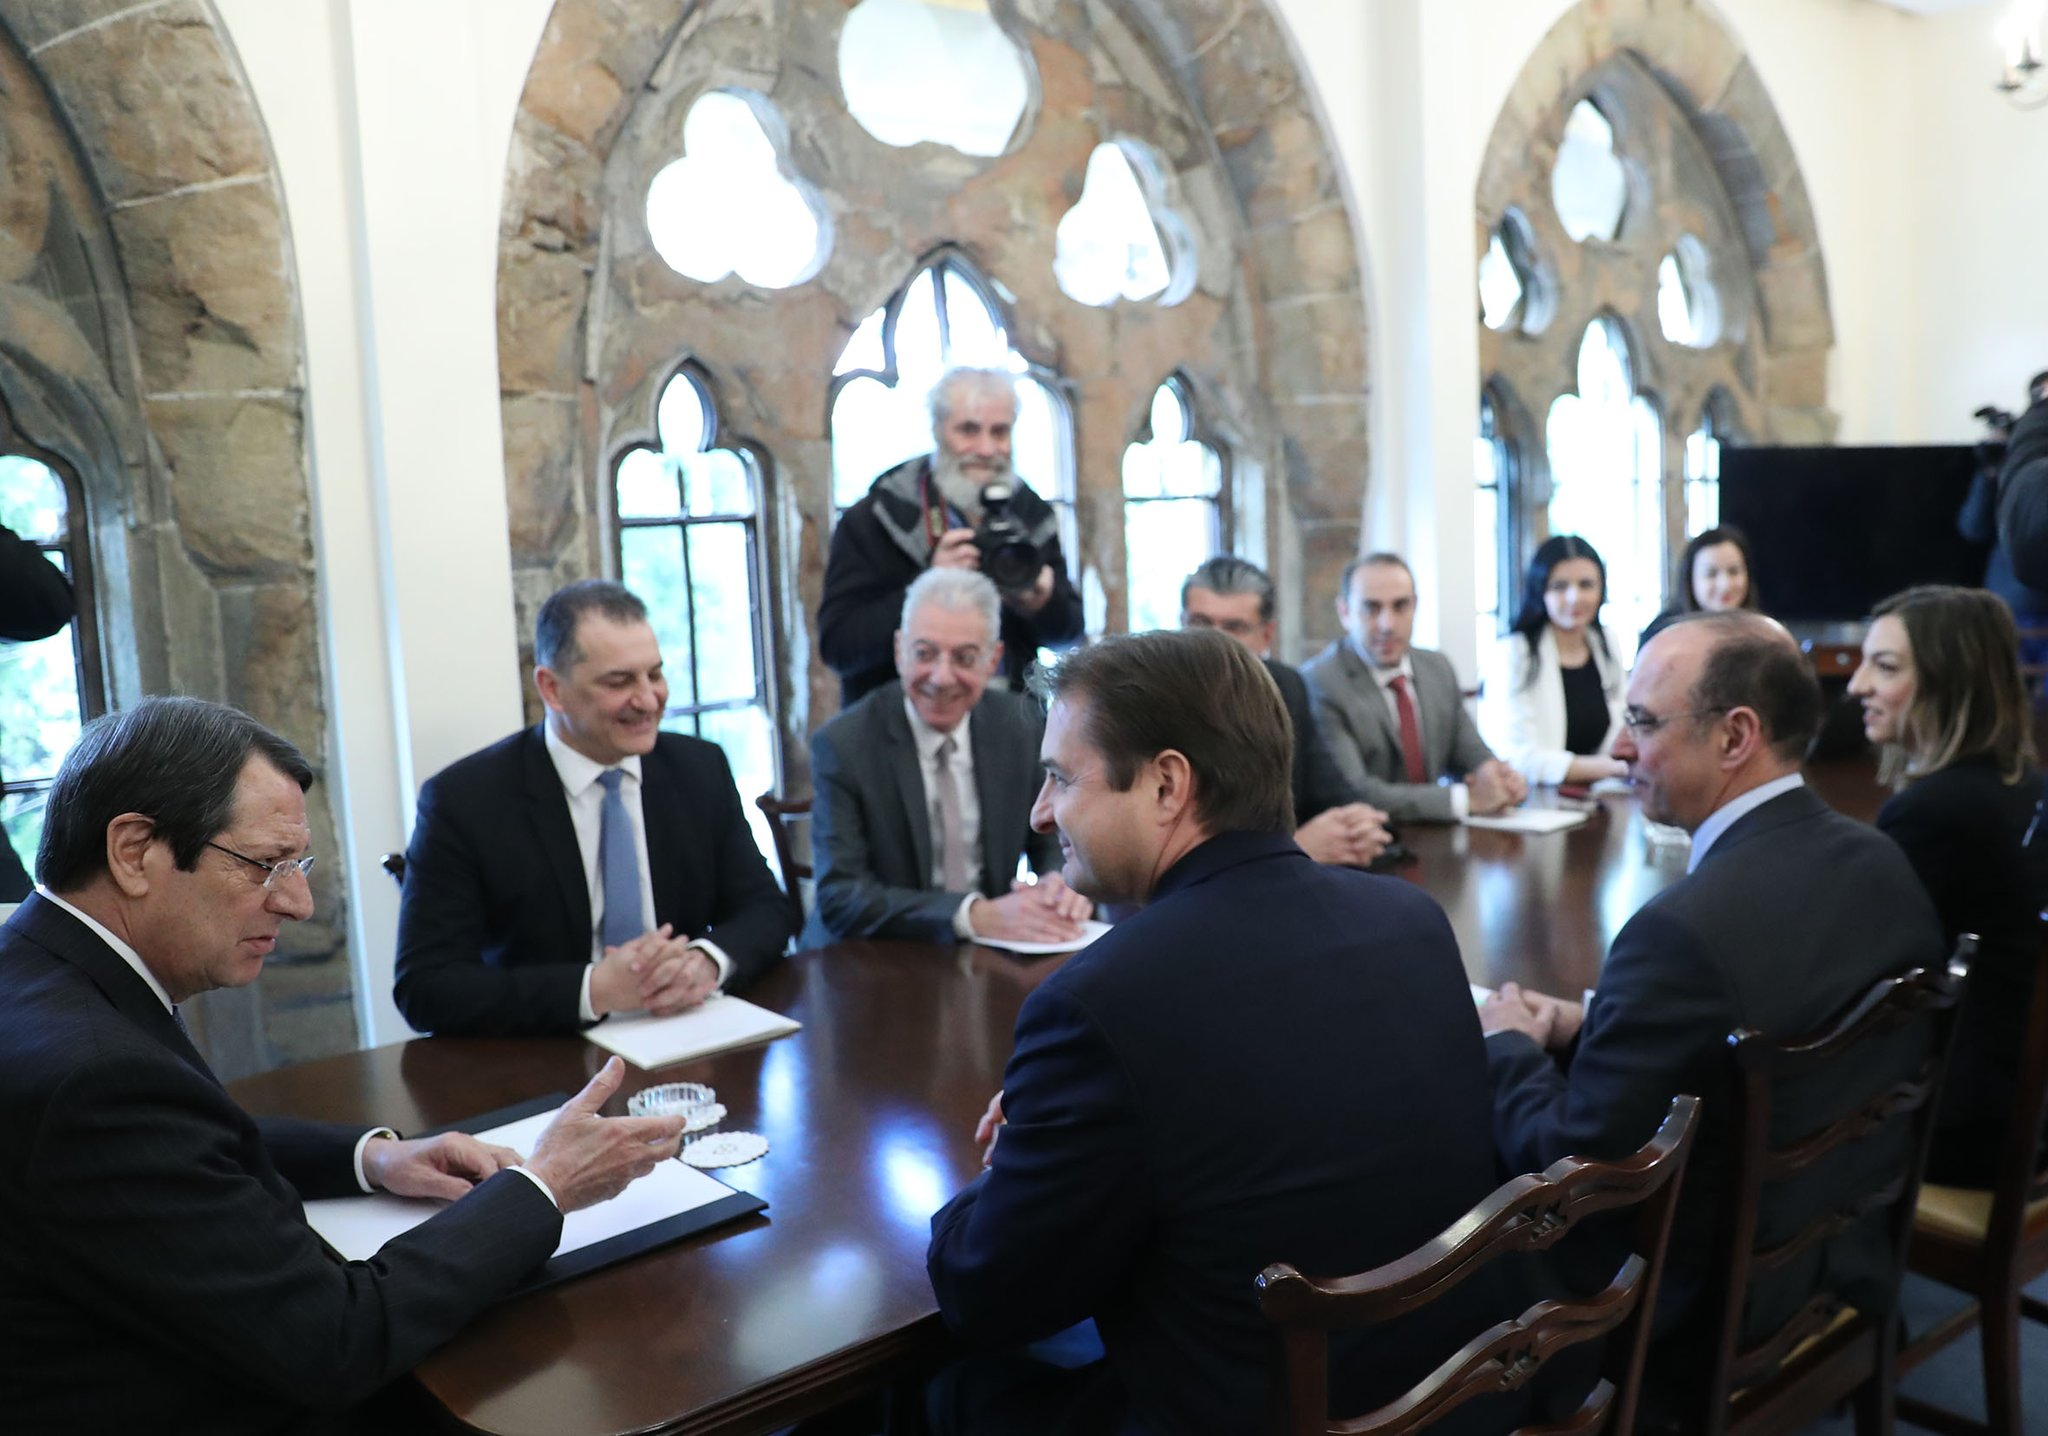 Cypriot president, Nicos Anastasiades, (far left) speaking to ExxonMobil's vice-president Tristan Aspray at the country's Presidential Palace